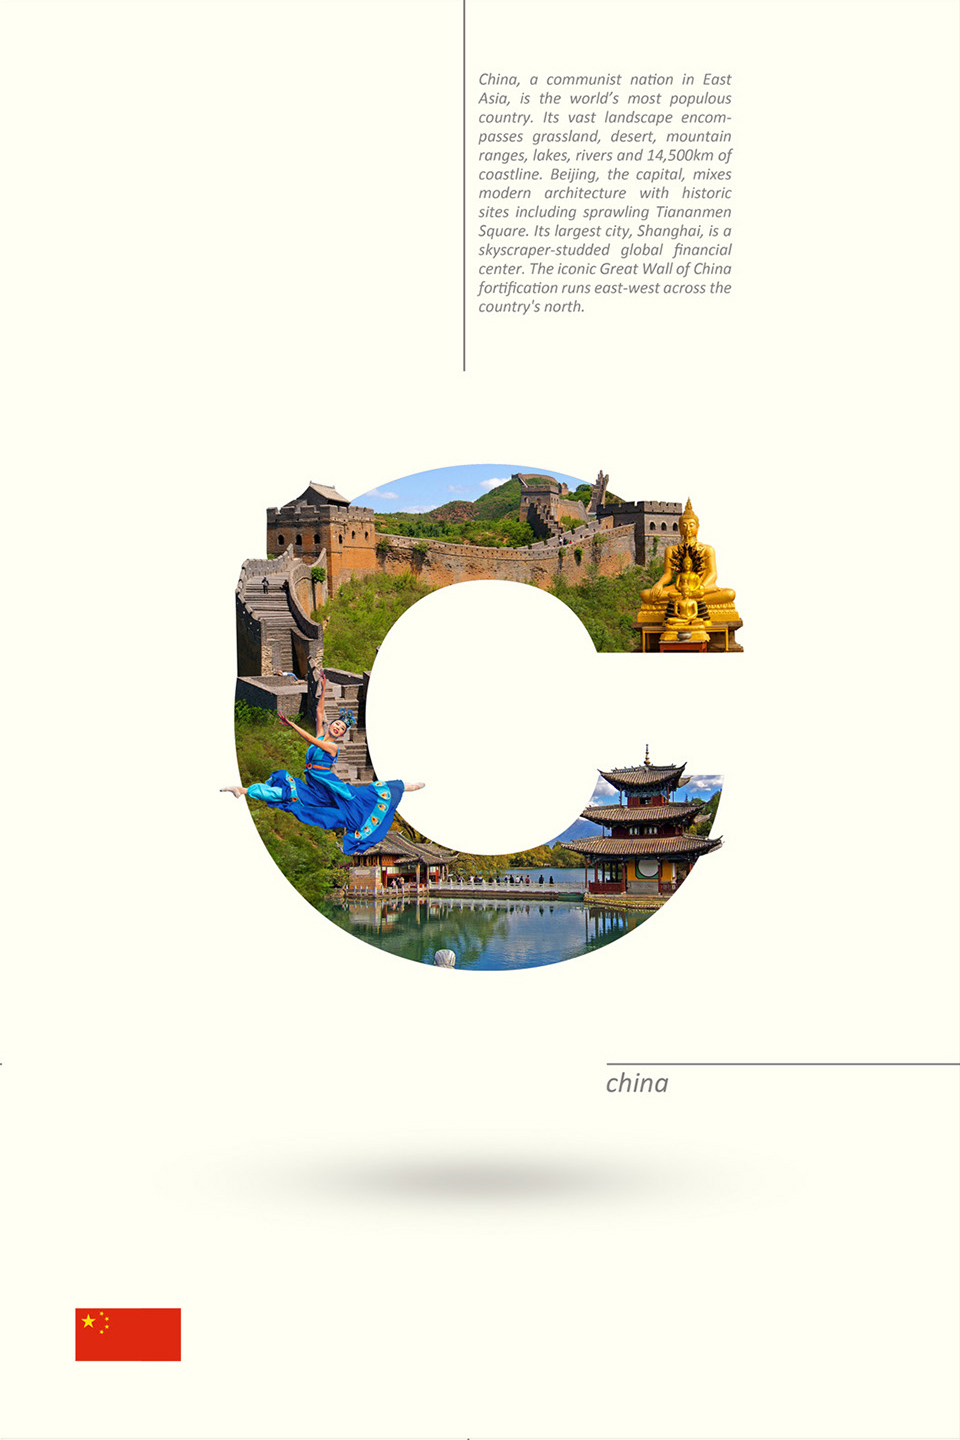 Beautiful Alphabet Series Of Countries And Their Iconic Landmarks - China